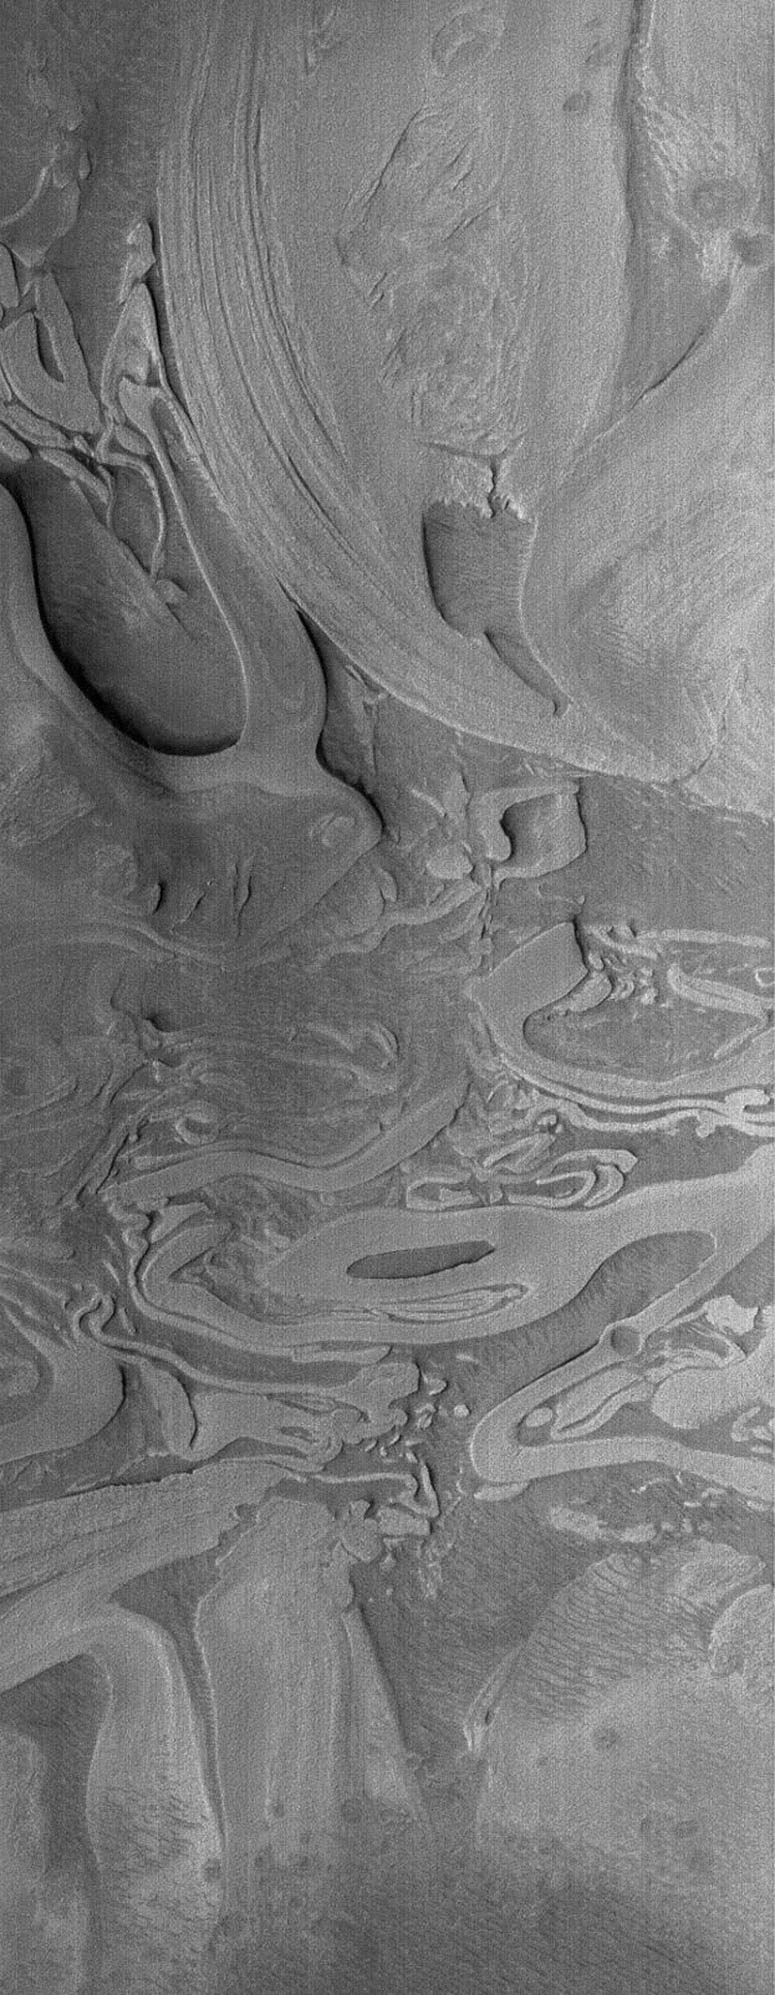 This image from NASA's Mars Global Surveyor shows an example of the extremely odd, seemingly scrambled layered rocks exposed by erosion near the deepest part of the deepest basin on Mars, Hellas.